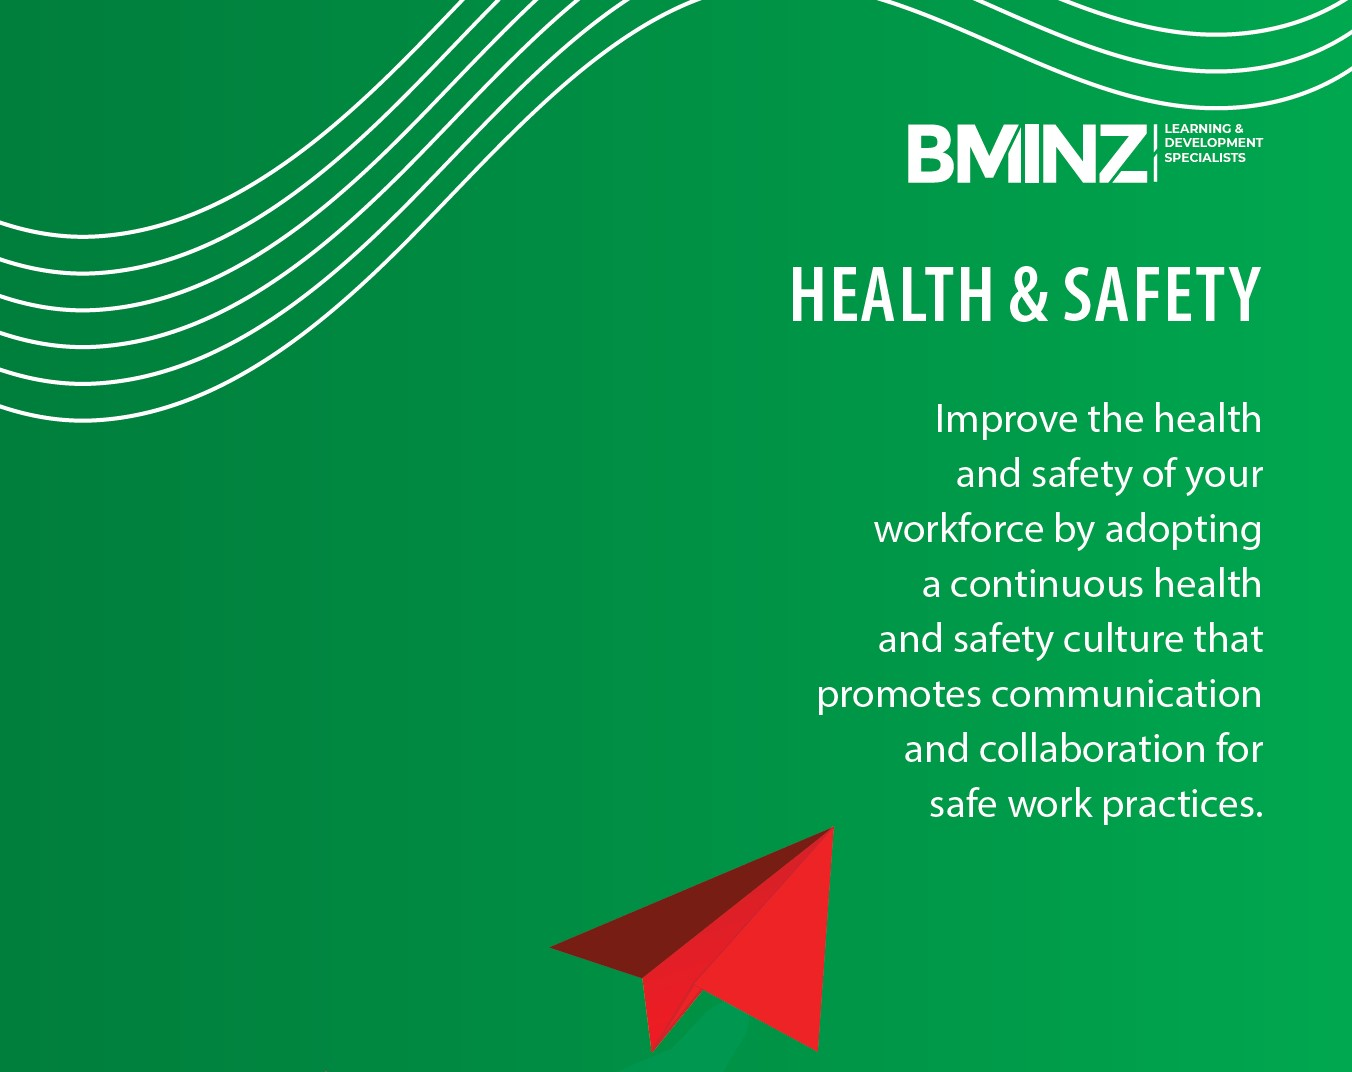 HEALTH & SAFETY: Improve the health and safety of your workforce by adopting a continuous health and safety culture that promotes communication and collaboration for safe work practices.